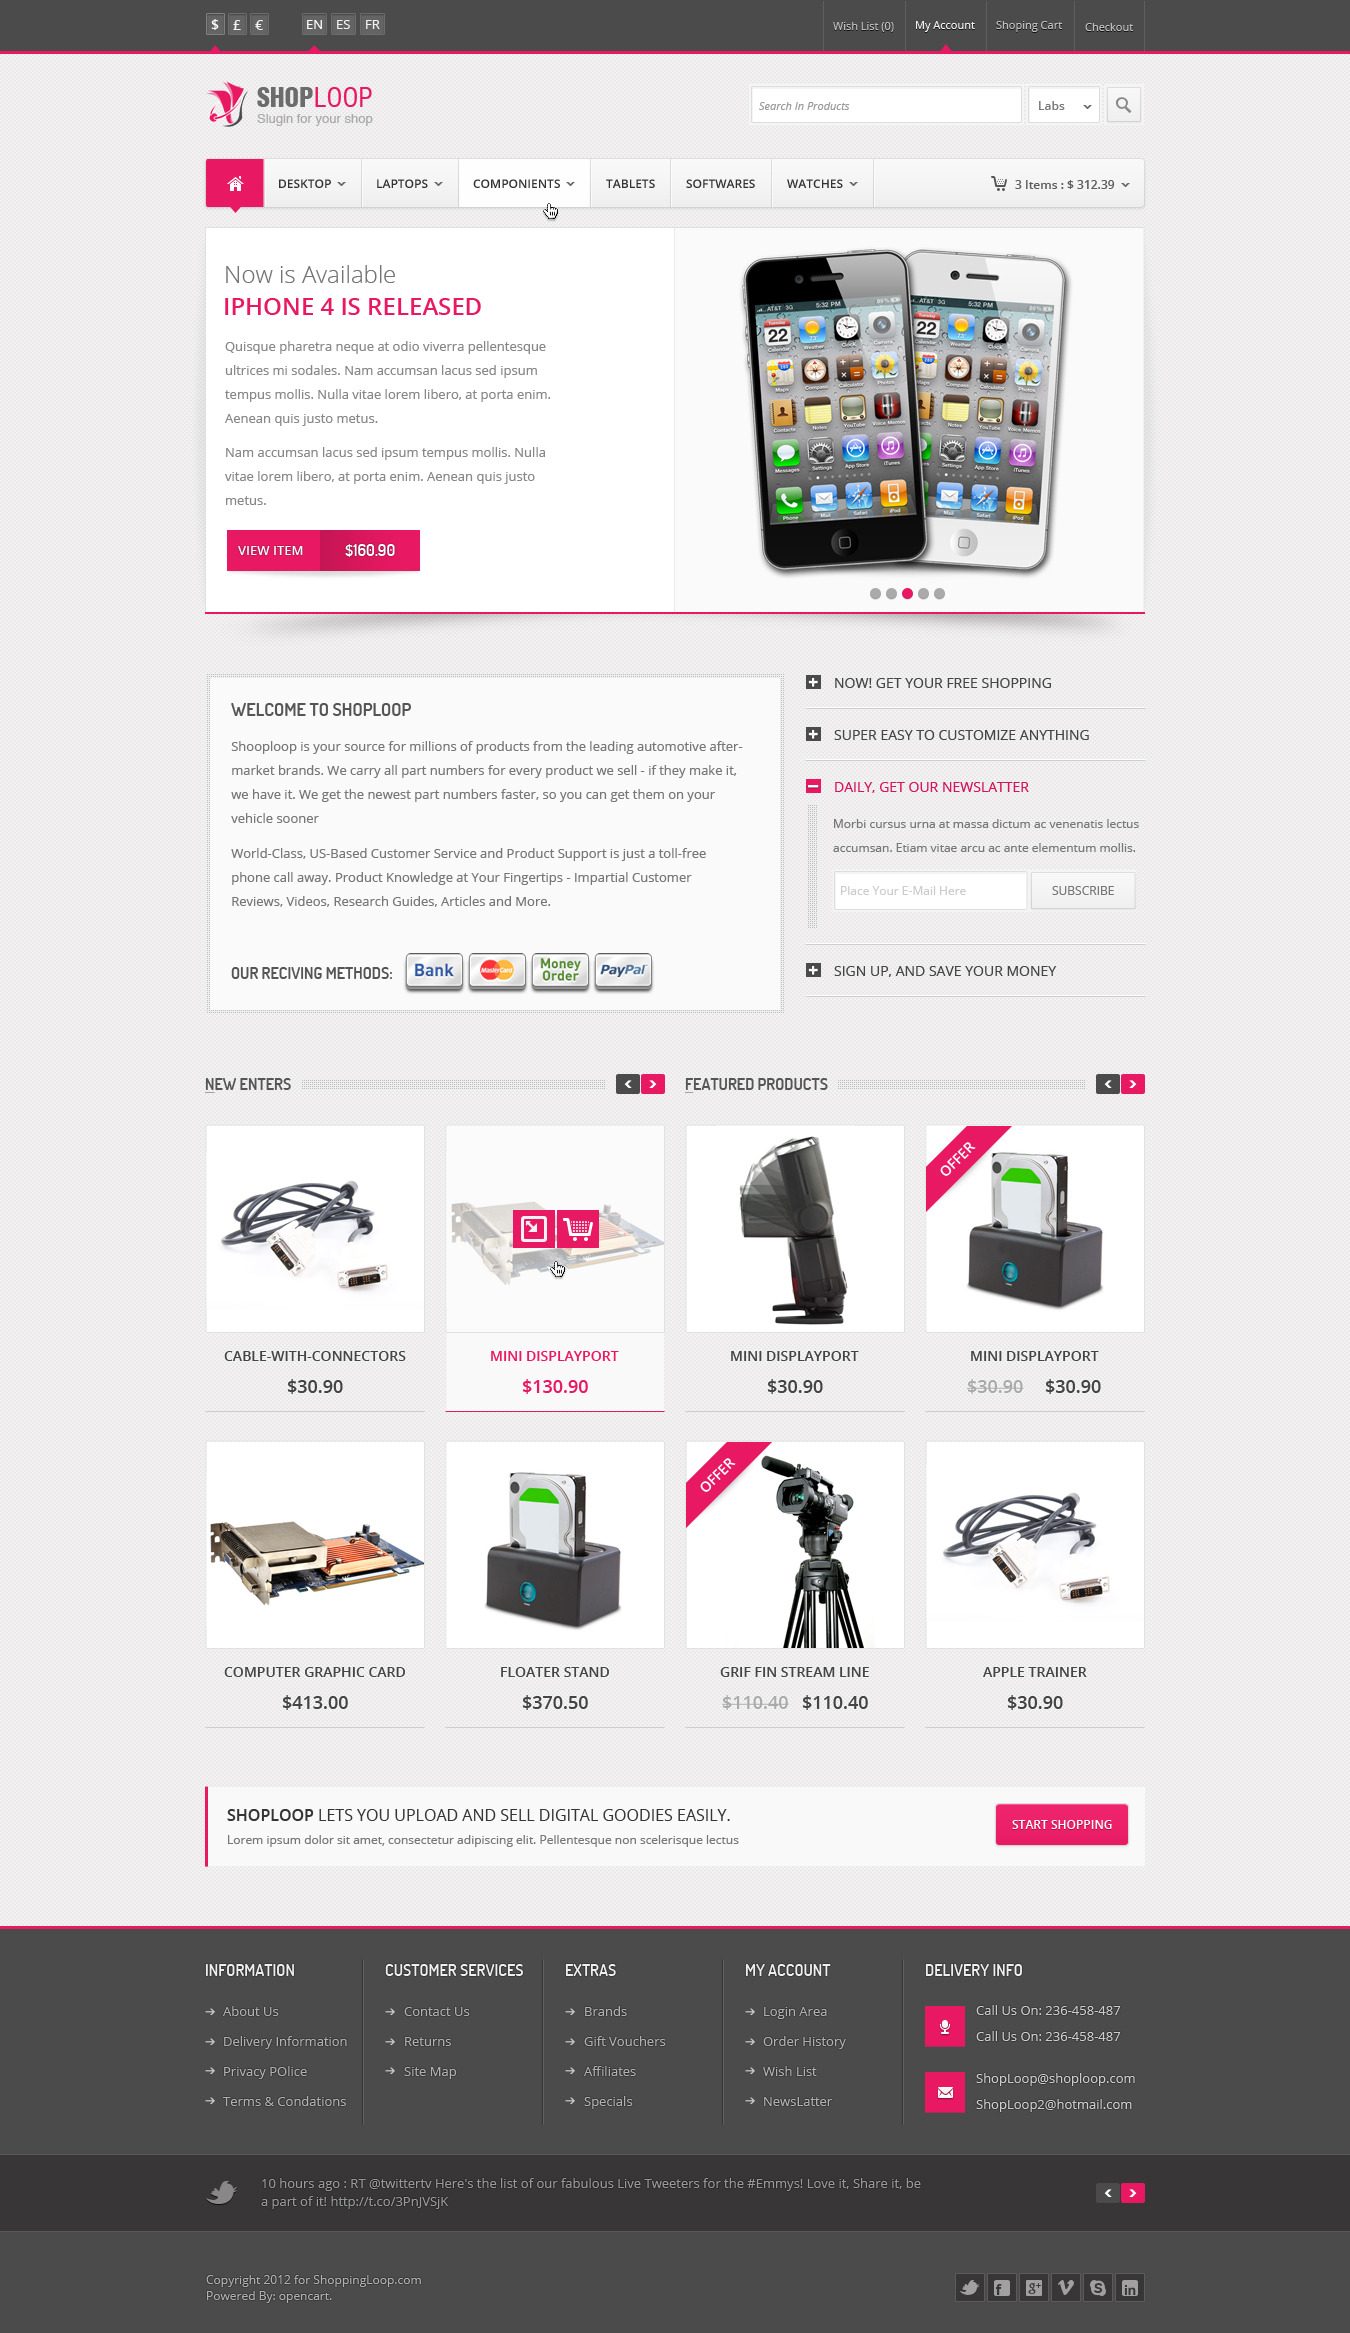 Fine 1 Page Proposal Template Small 1 Year Experience Resume Format For Java Developer Rectangular 1 Year Experience Resume Format Free Download 12 Page Booklet Template Young 2013 Calendar Templates Purple24 Hour Calendar Template Shoploop: Responsive Html5 ECommerce Template By Ahmedchan ..